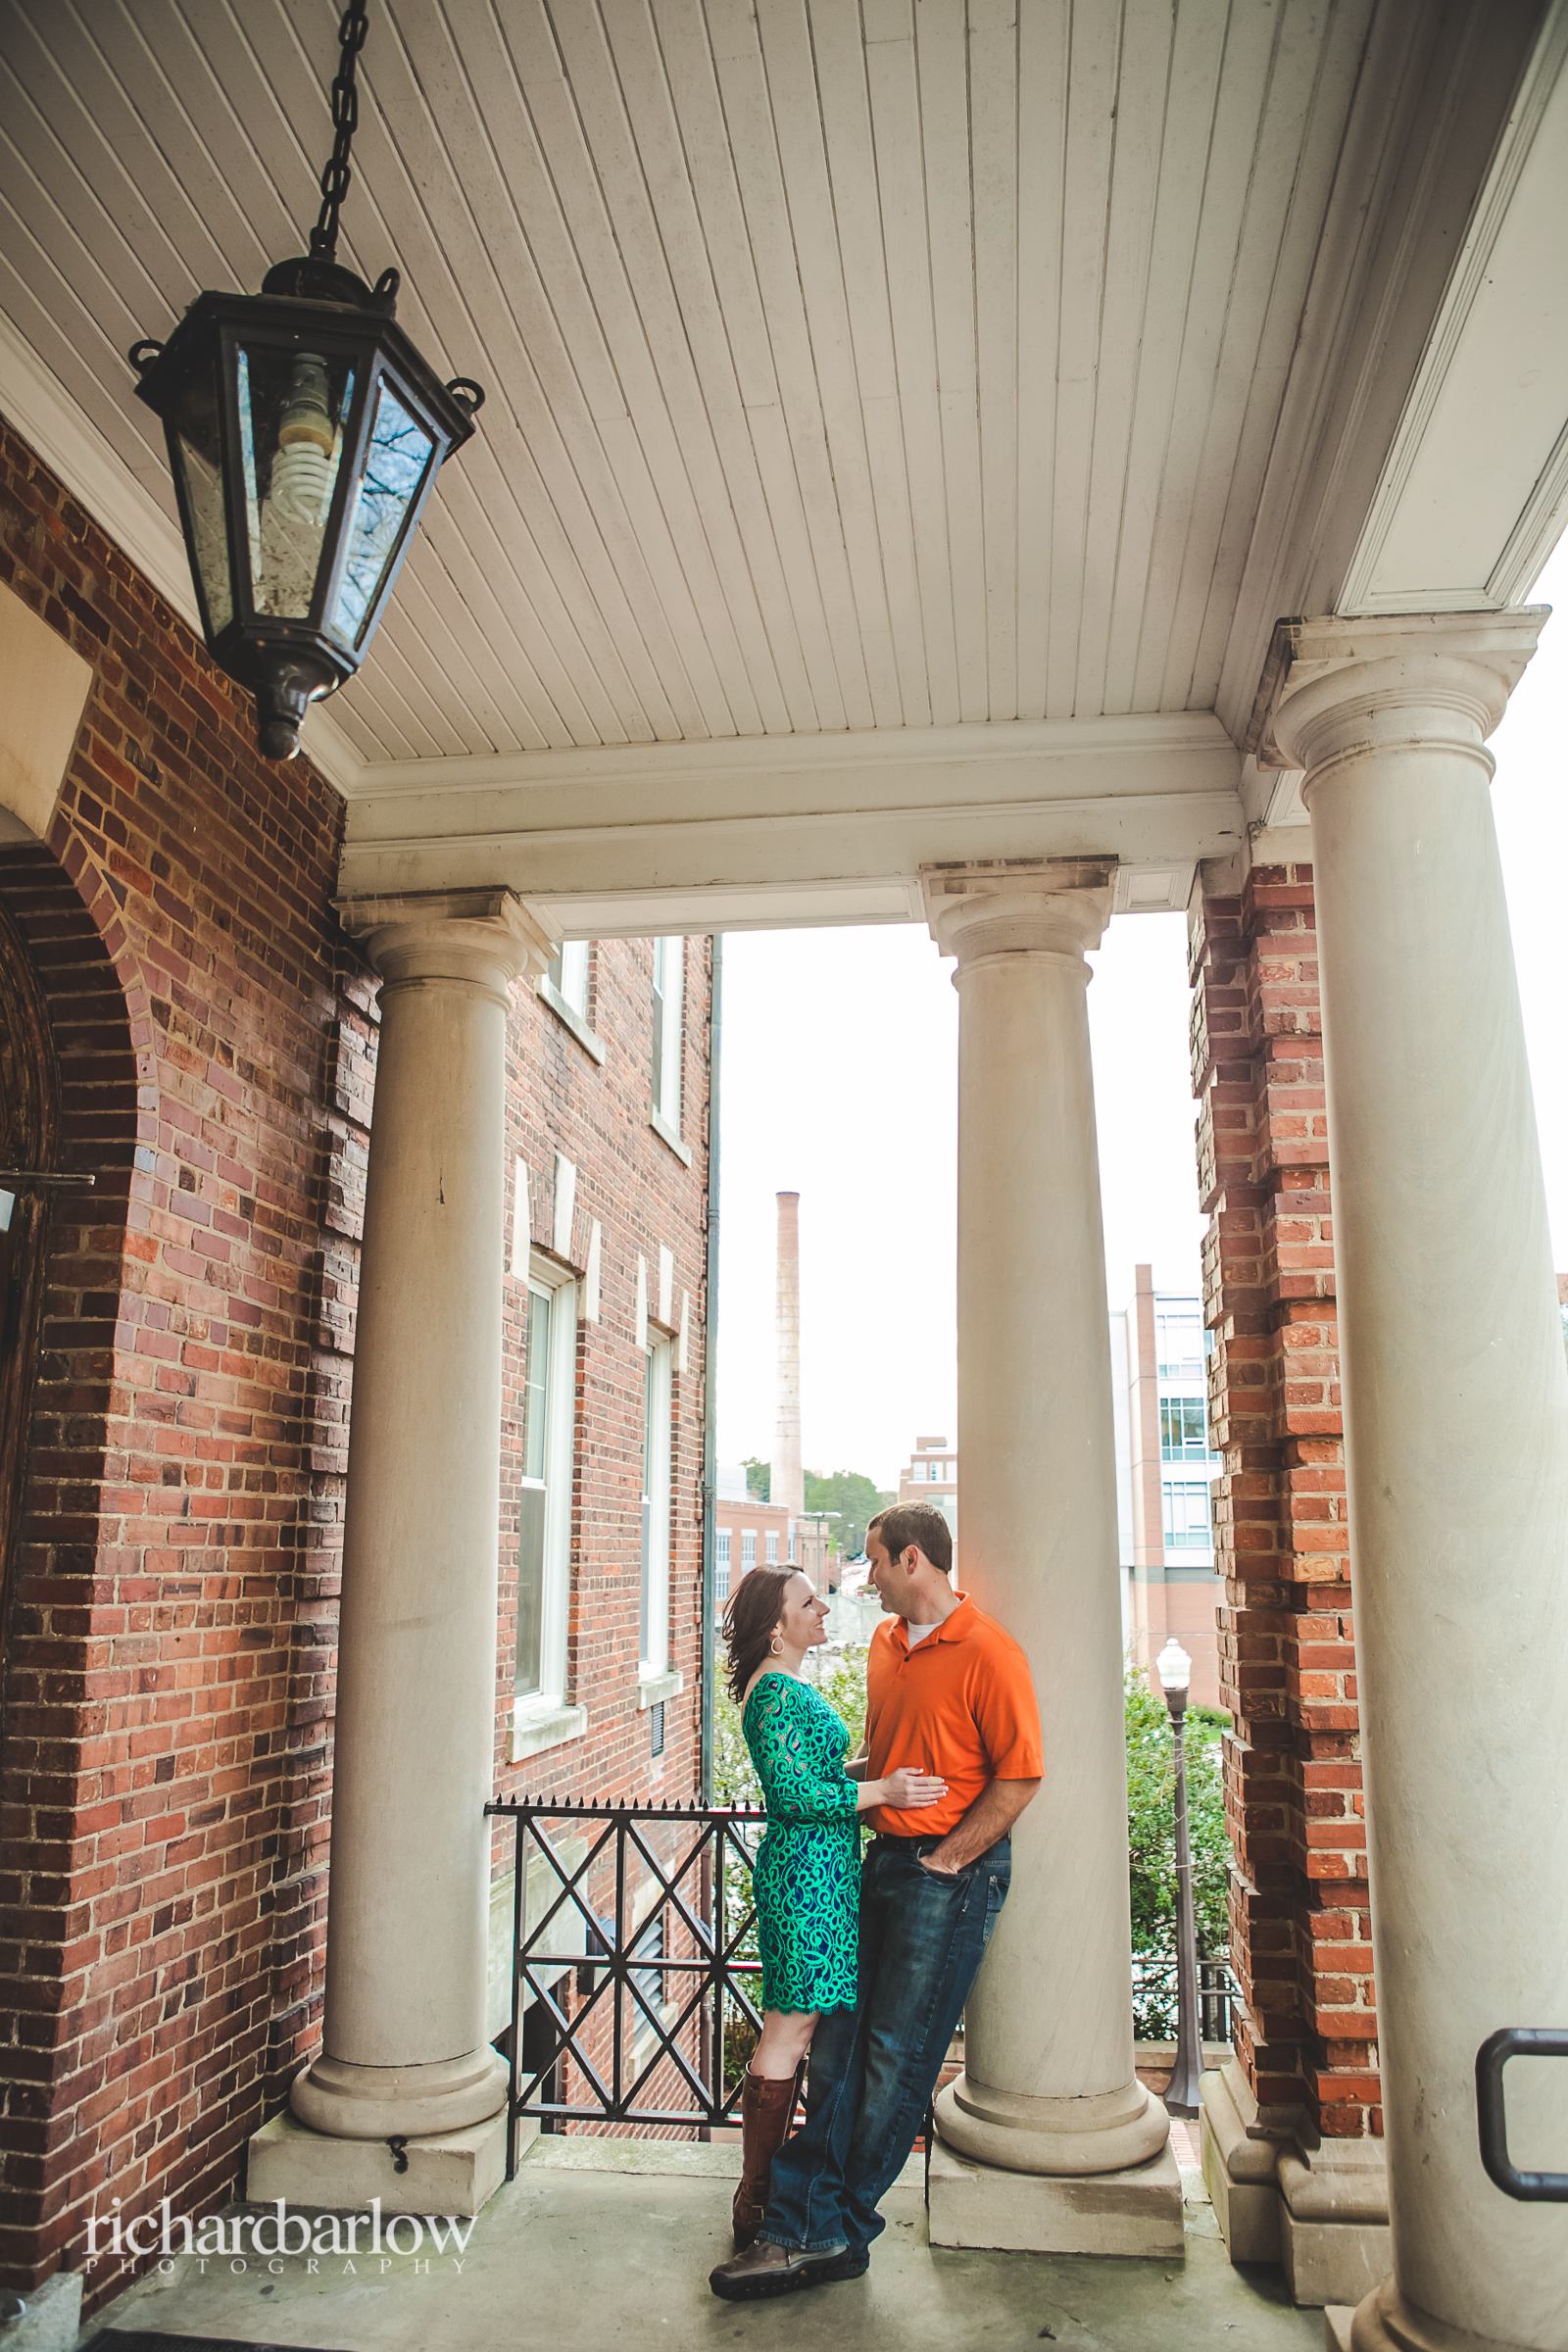 richard barlow photography - Jason and Karen Engagement Session NC State-19.jpg